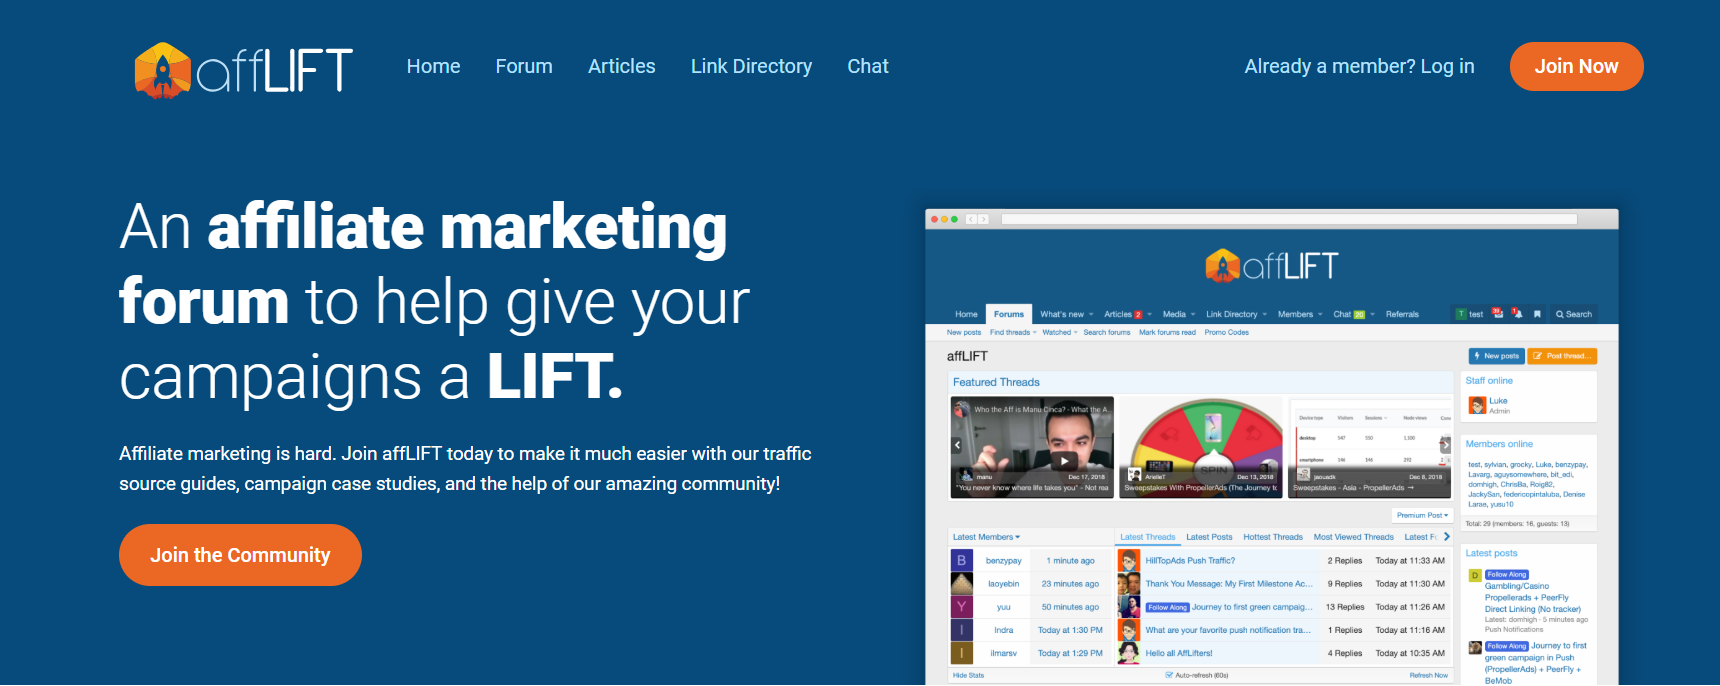 AffLIFT Review- The Affiliate Marketing Forum Community